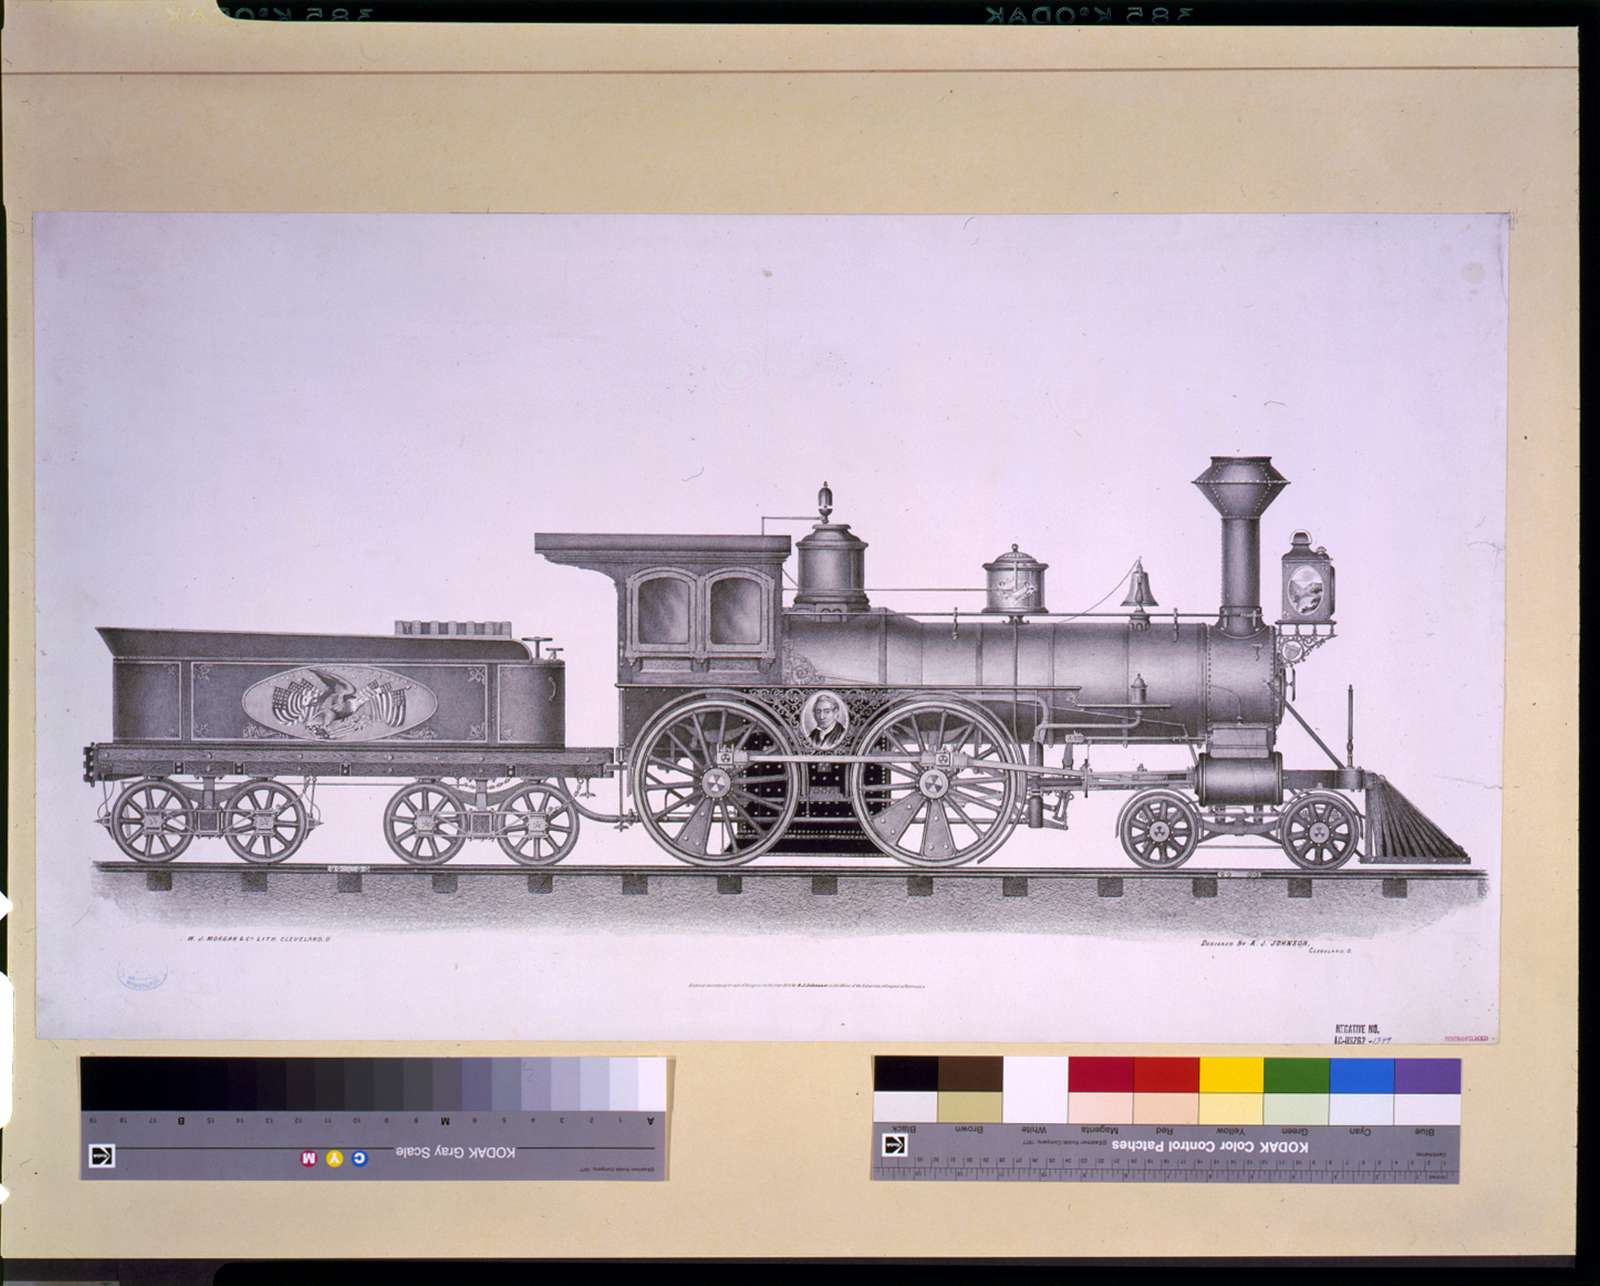 [Railroad engine] / W.J. Morgan & Co. lith., Cleveland, O. ; designed by A.J. Johnson, Cleveland, O.